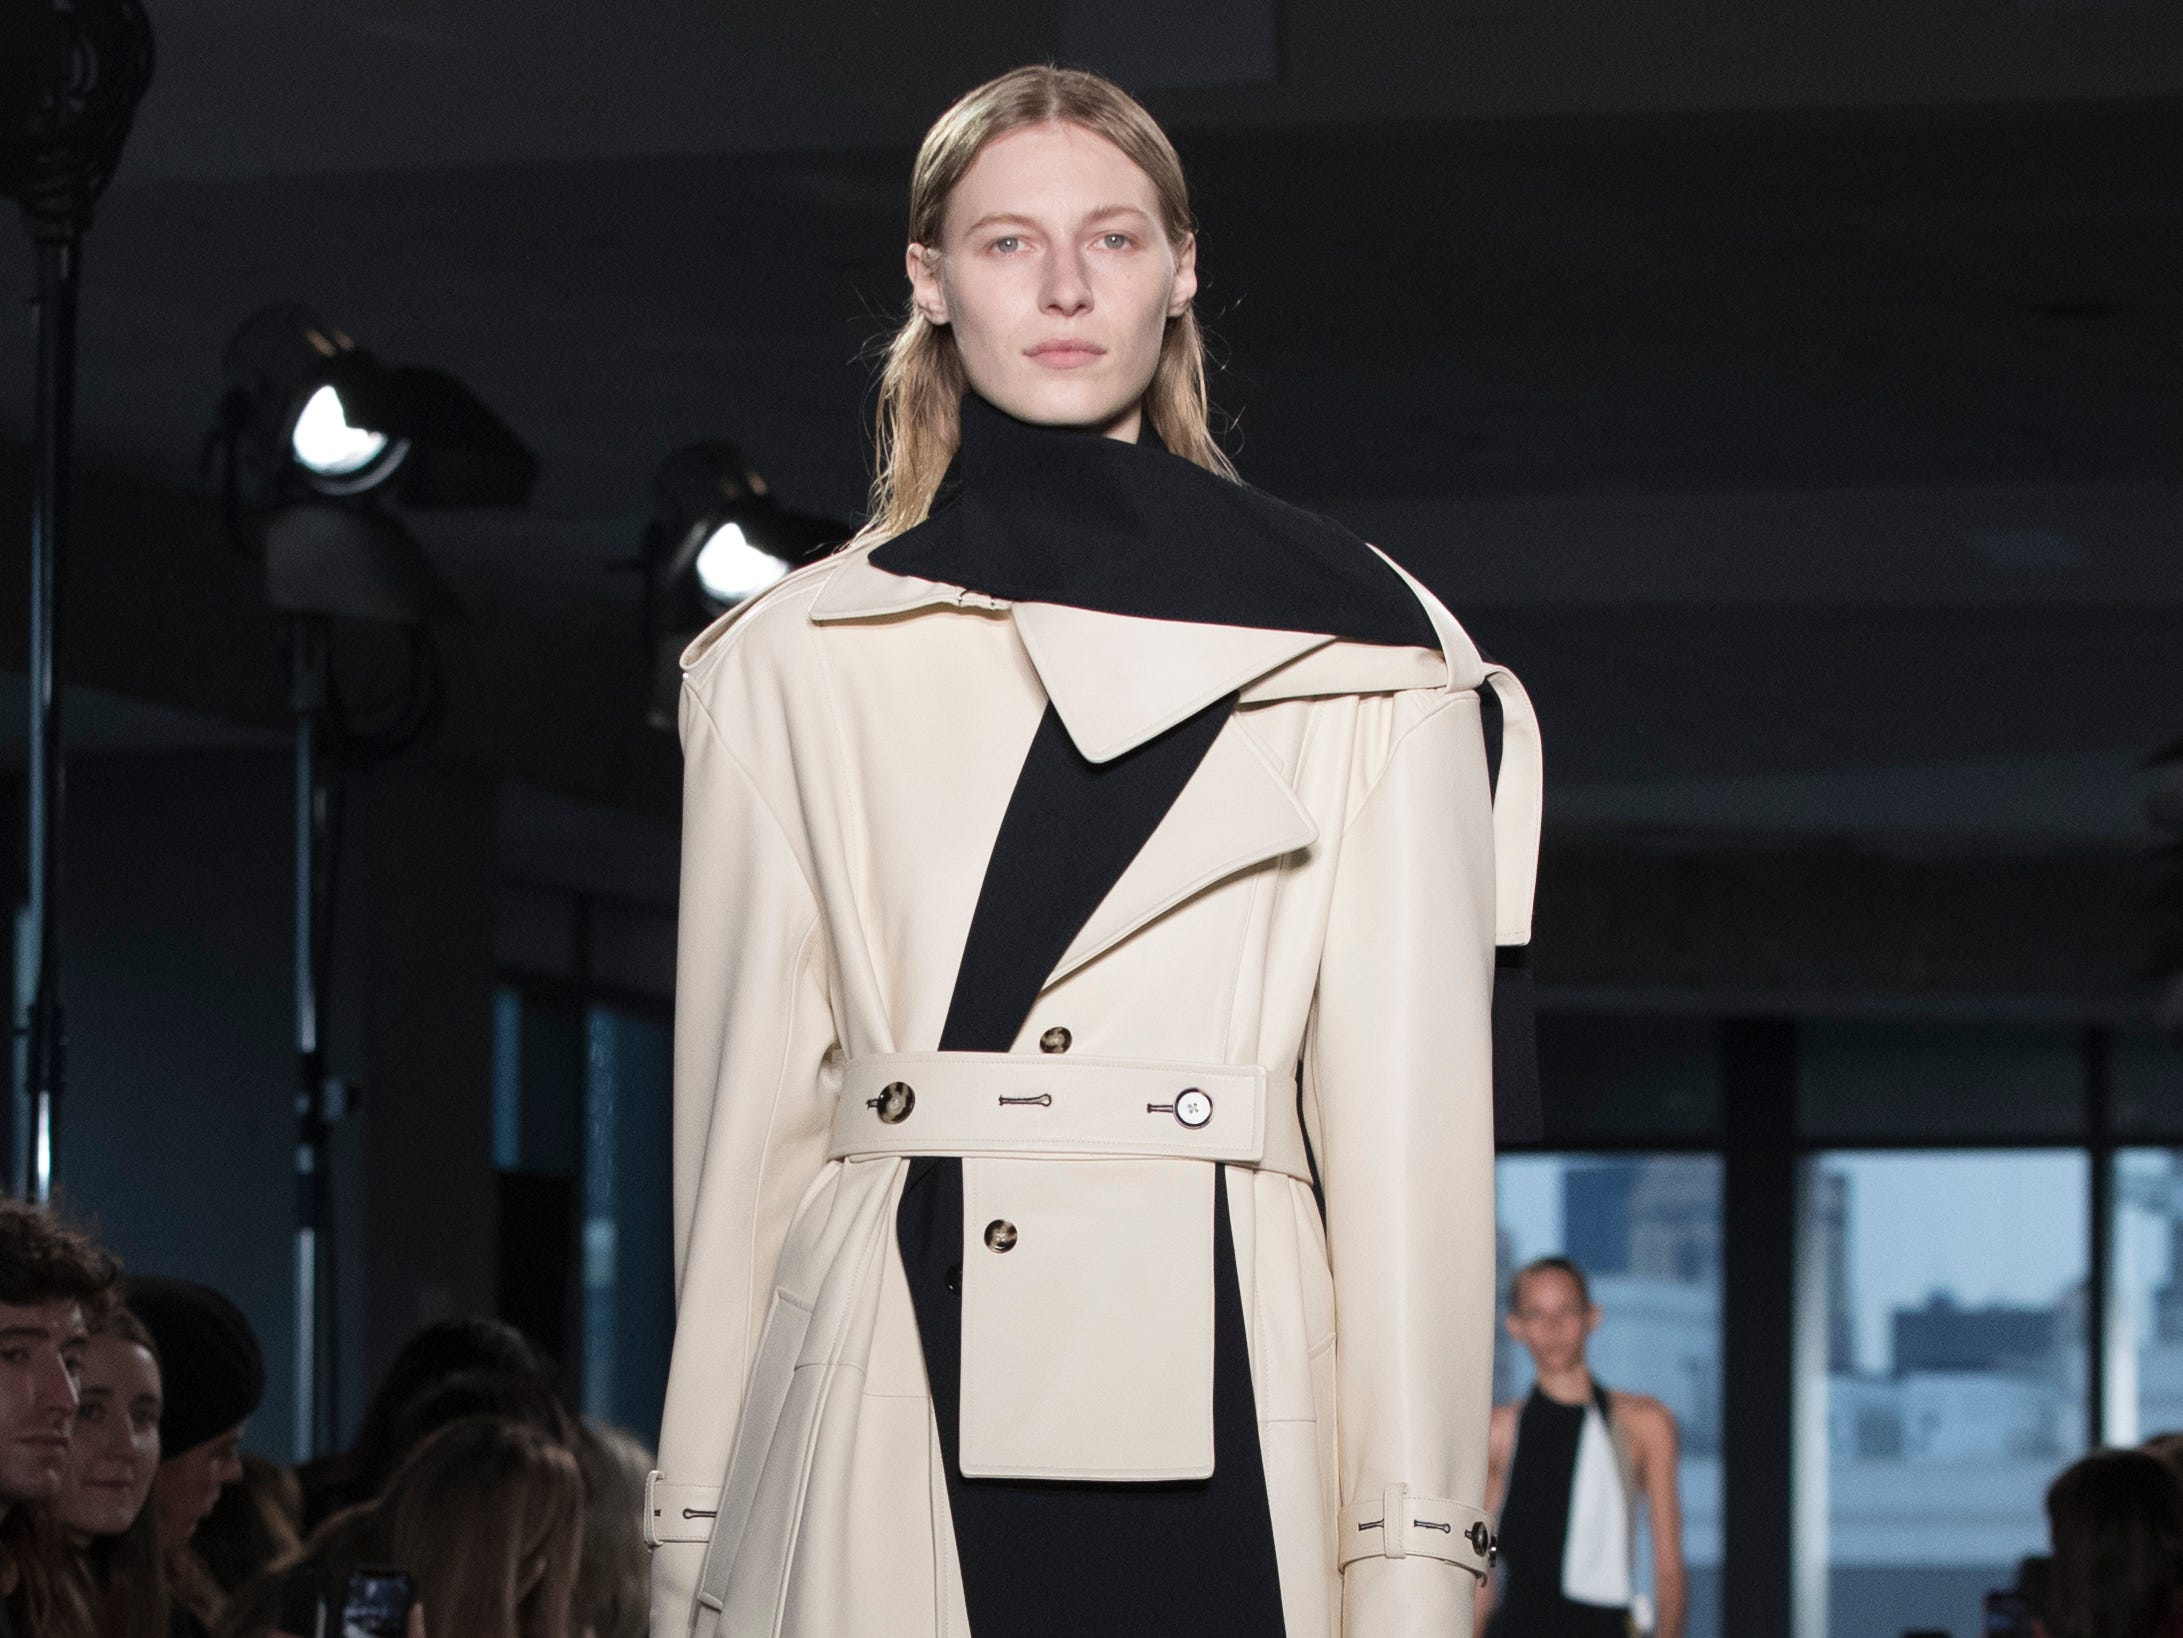 Proenza Schouler played with deconstructed menswear in this look.